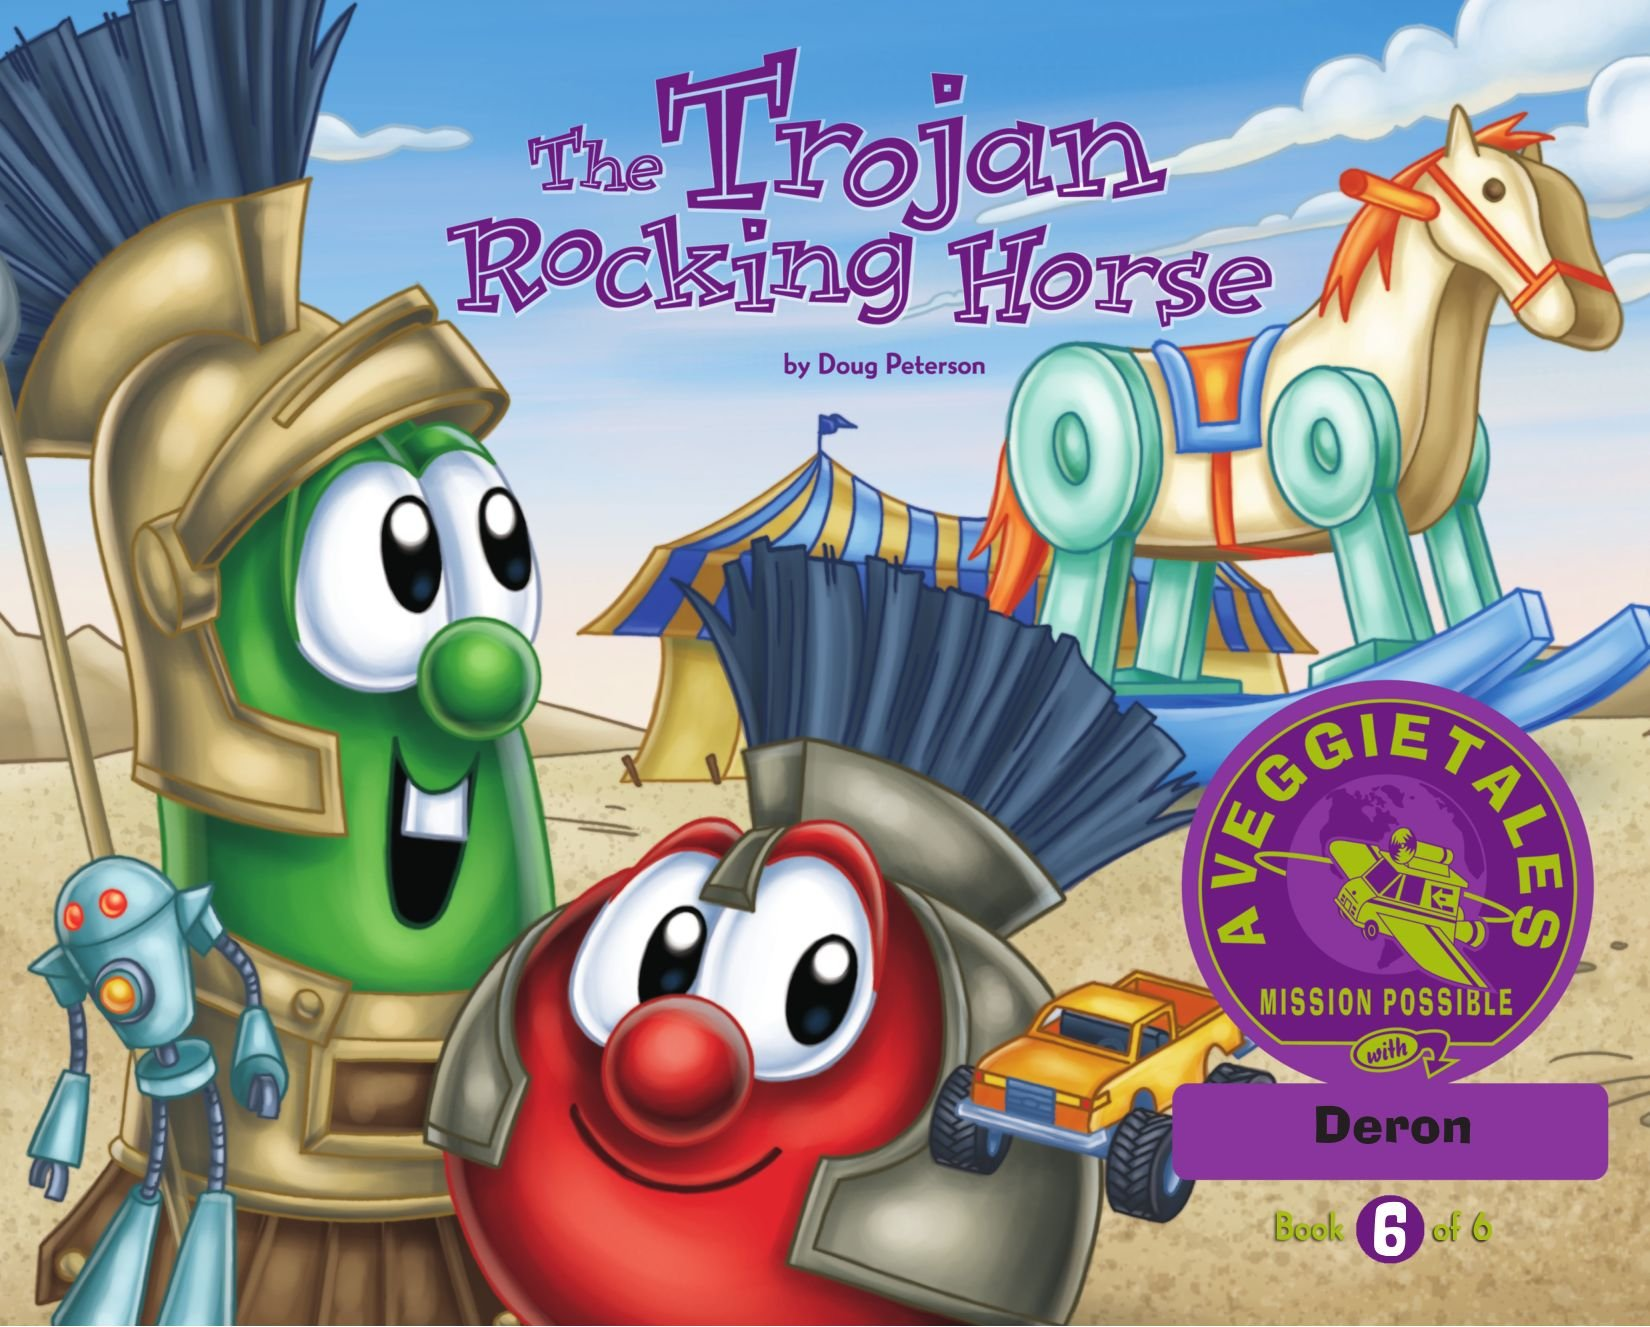 The Trojan Rocking Horse - VeggieTales Mission Possible Adventure Series #6: Personalized for Deron (Girl) pdf